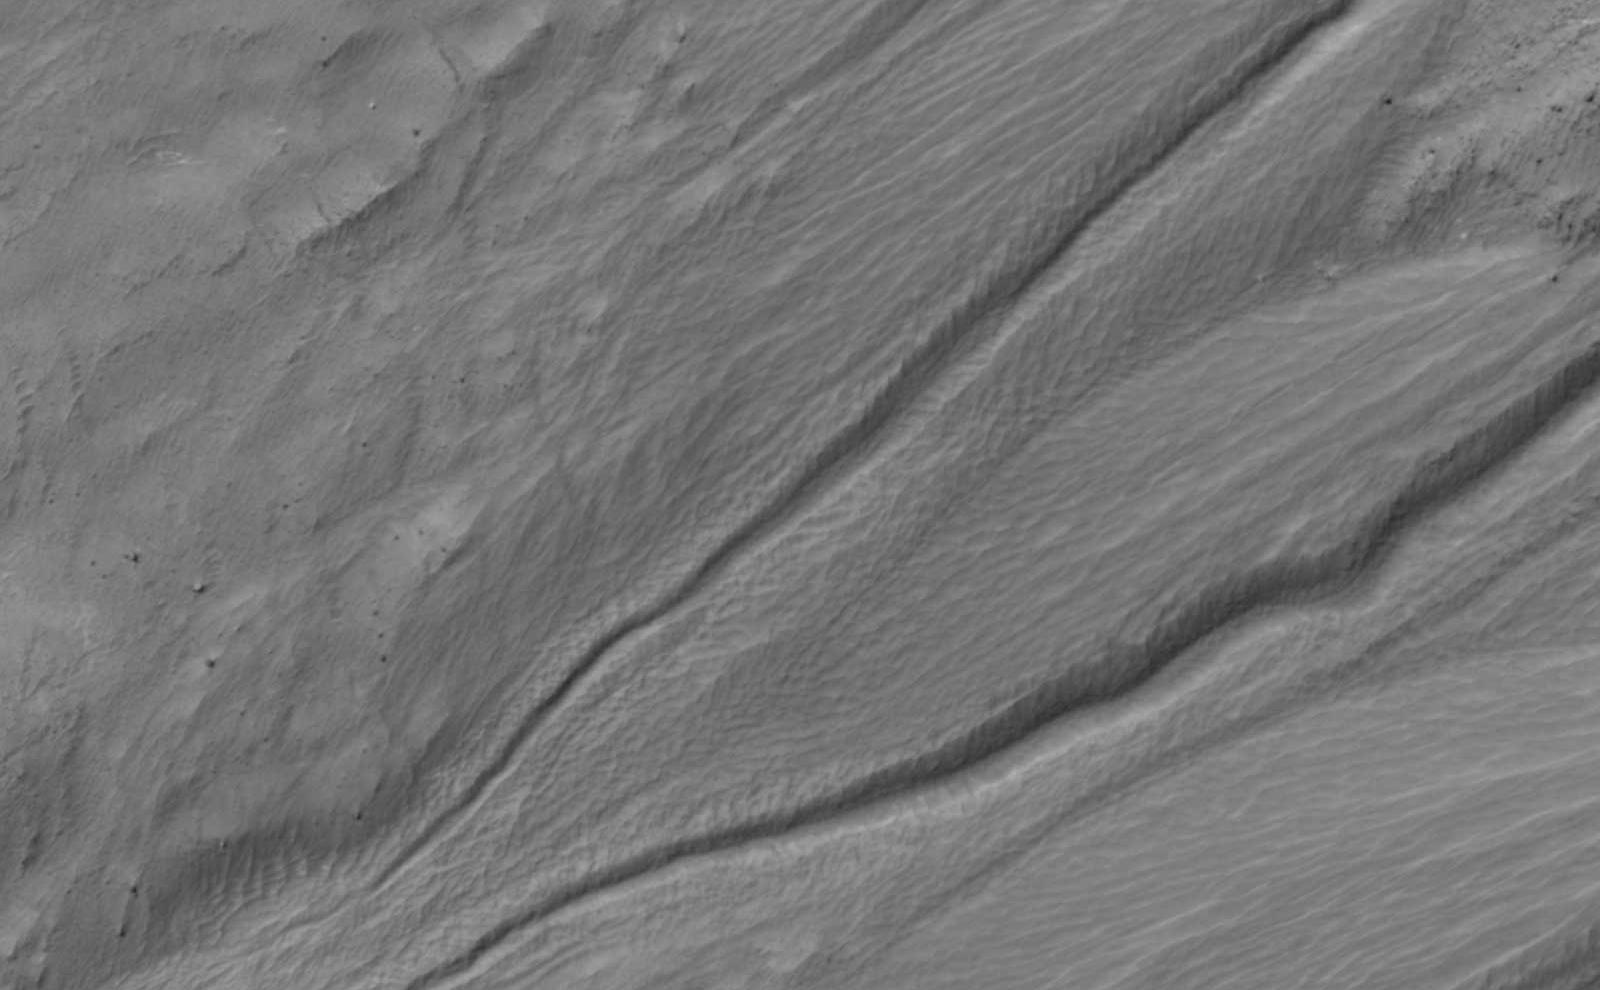 This back and forth comparison shows changes that occurred in a gully on a south-facing slope in middle southern latitudes of Mars.